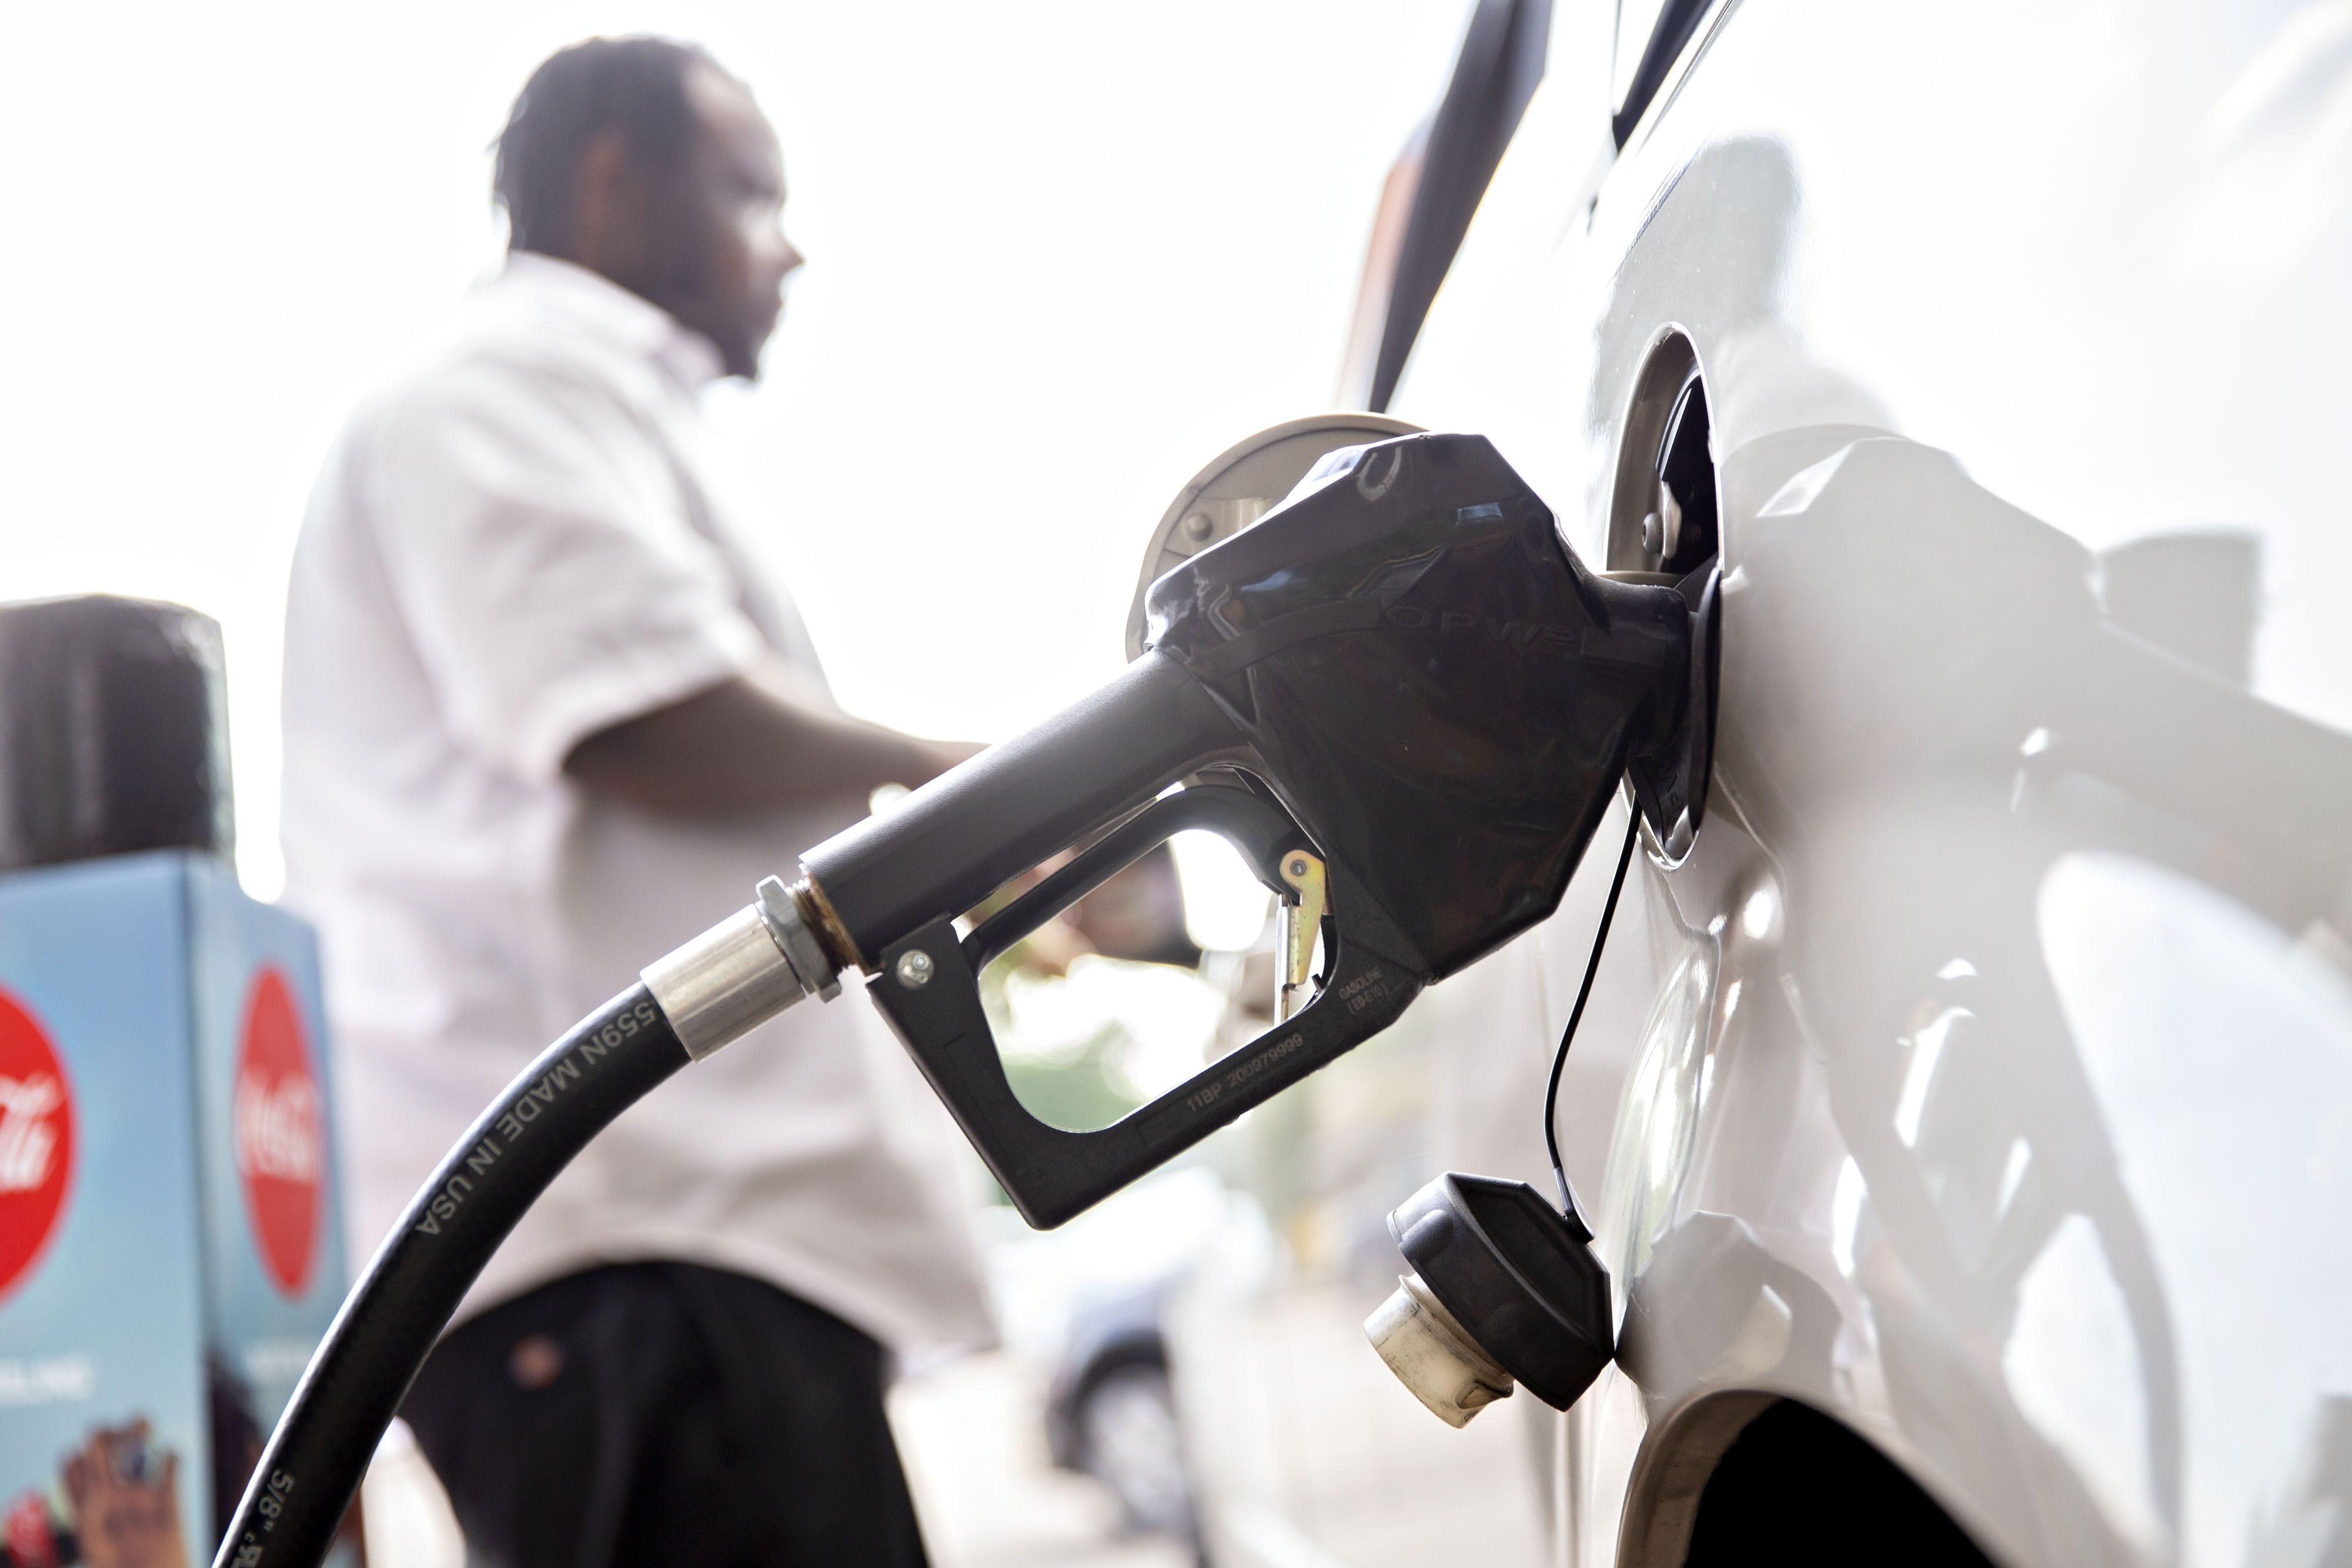 bloomberg.com - Saleha Mohsin - Gas-Tax Hike Is in Play as Trump Weighs Infrastructure Politics